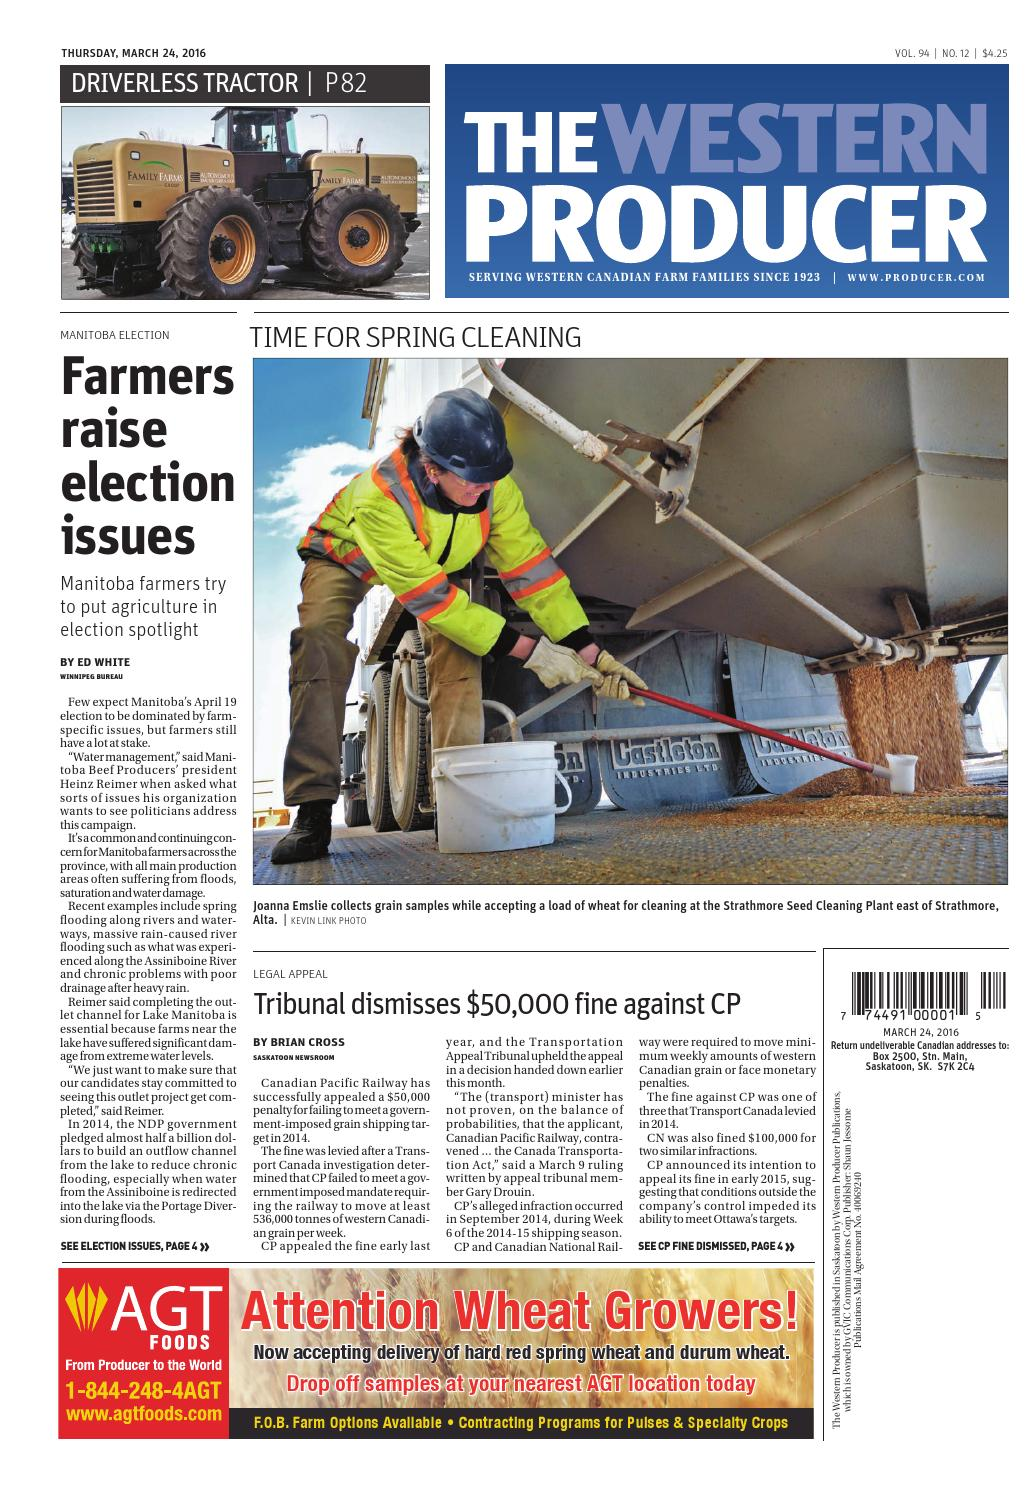 The Western Producer March 24 2016 By